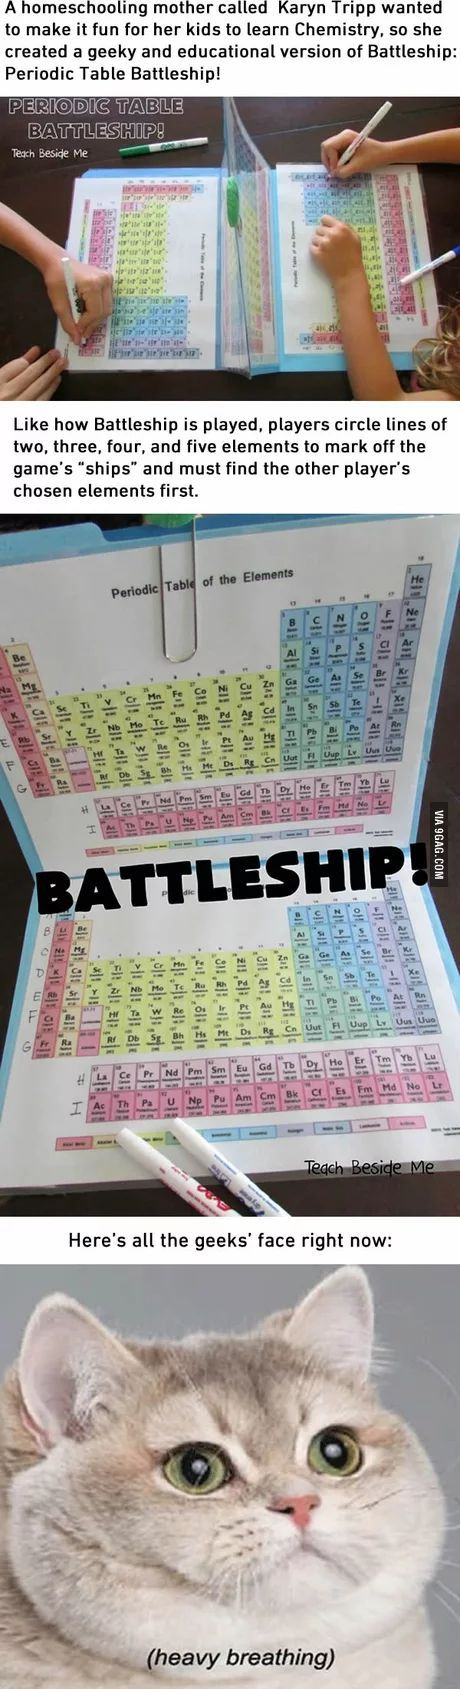 I would have loved the chemistry more with this battleship for the periodic table